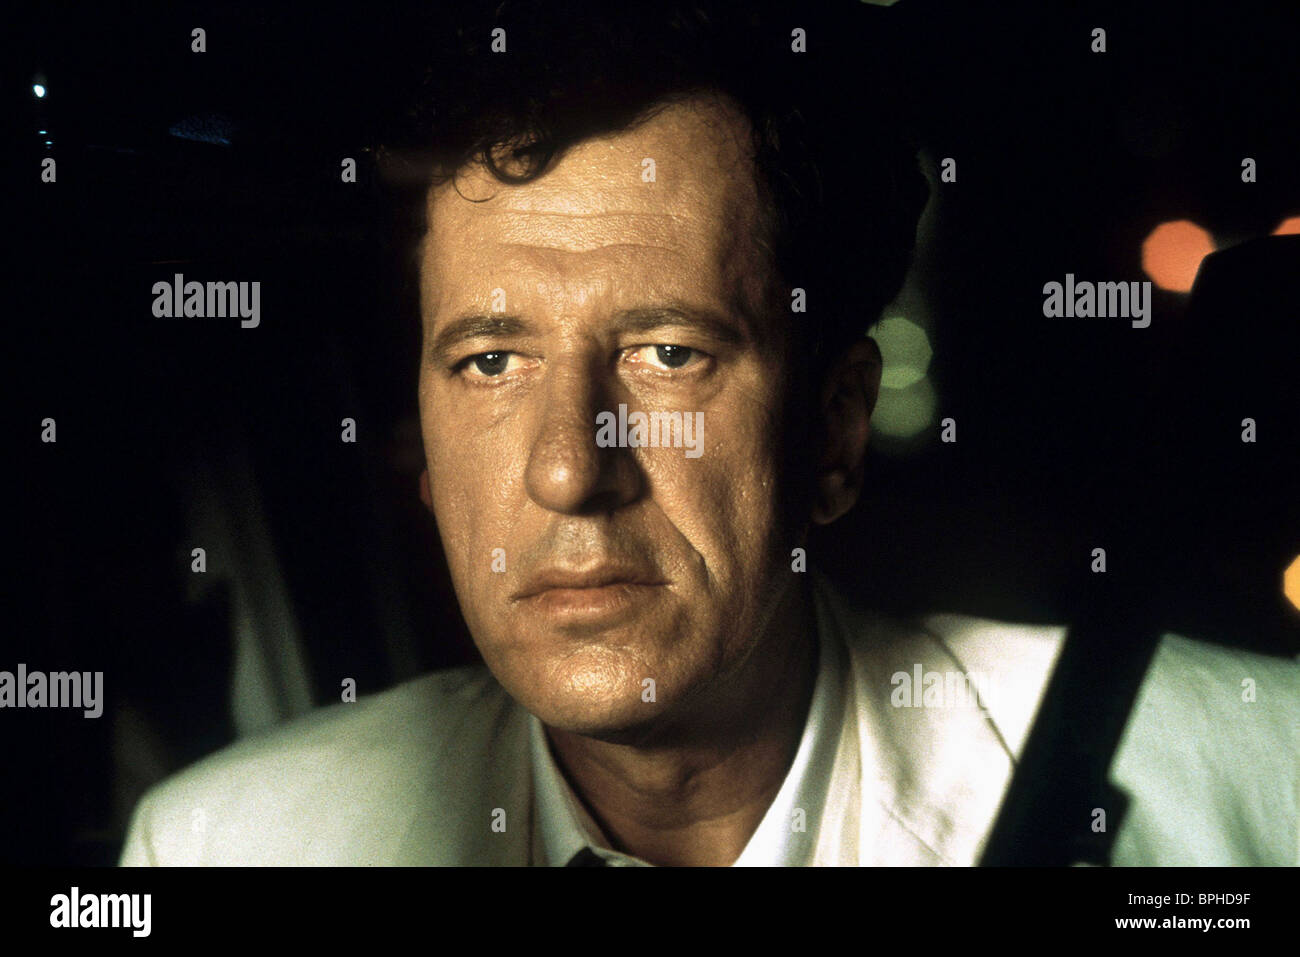 GEOFFREY RUSH THE TAILOR OF PANAMA (2001) - Stock Image